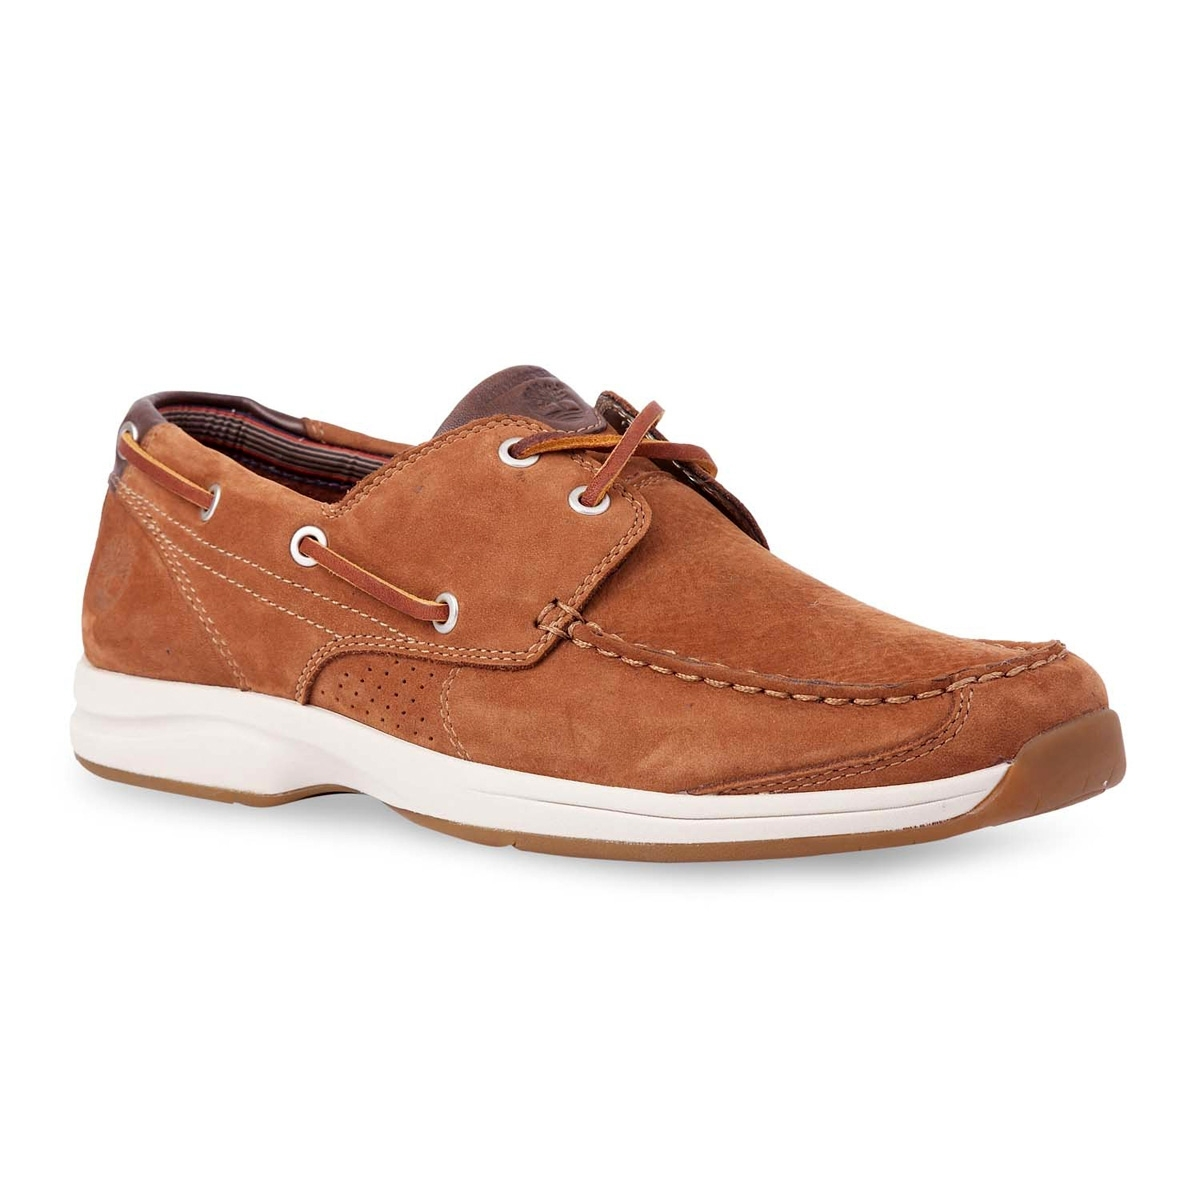 Cincuenta relé Fácil de suceder  Timberland Earthkeepers Hulls Cove 2-Eye Boat Shoe (Men's) - Red Brown  Nubuck | Uttings.co.uk